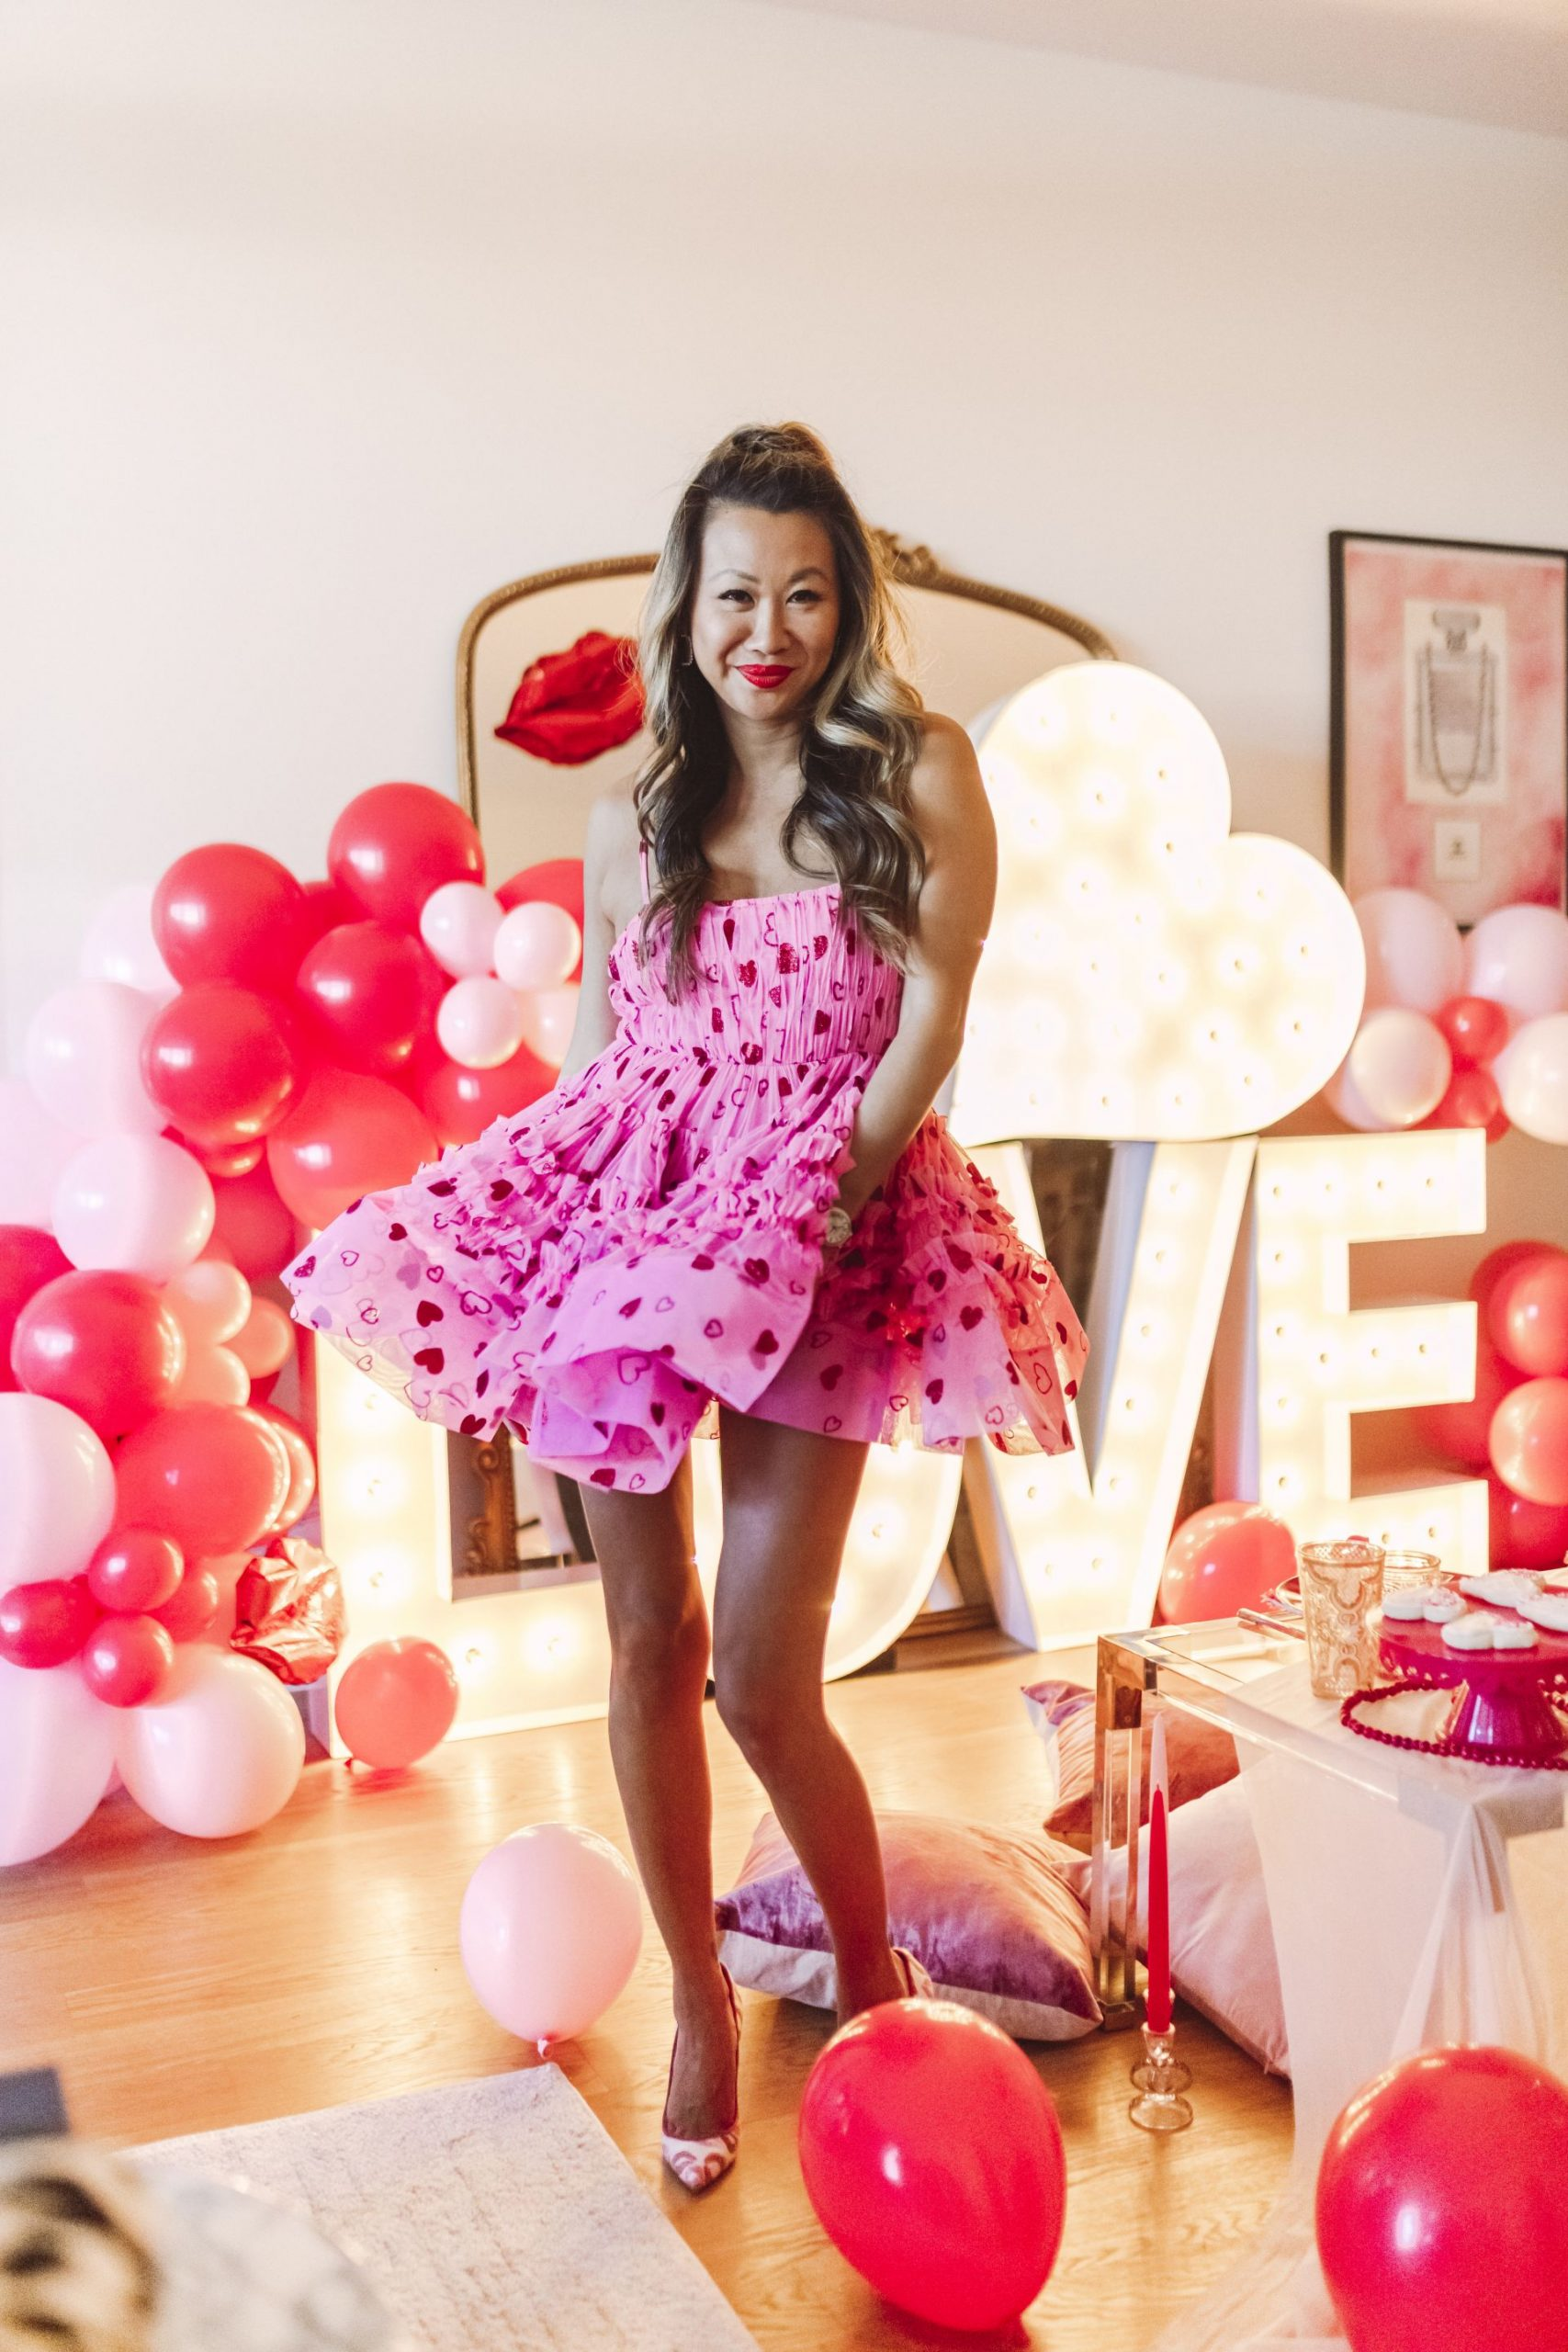 Valentine's Day style, pink vday dress, valentines day dress, galentines day dress, Glam Party Decor Ideas, Galentine's party decor, Valentine's day party decor, girls night party decor ideas, Vday party decorations, pink and red party theme, girly partytheme decor, love party theme decor,valentines day party ideas,valentines day party ideas for adults, light up marquee letters for parties, Red Soles and Red Wine, Jennifer Worman